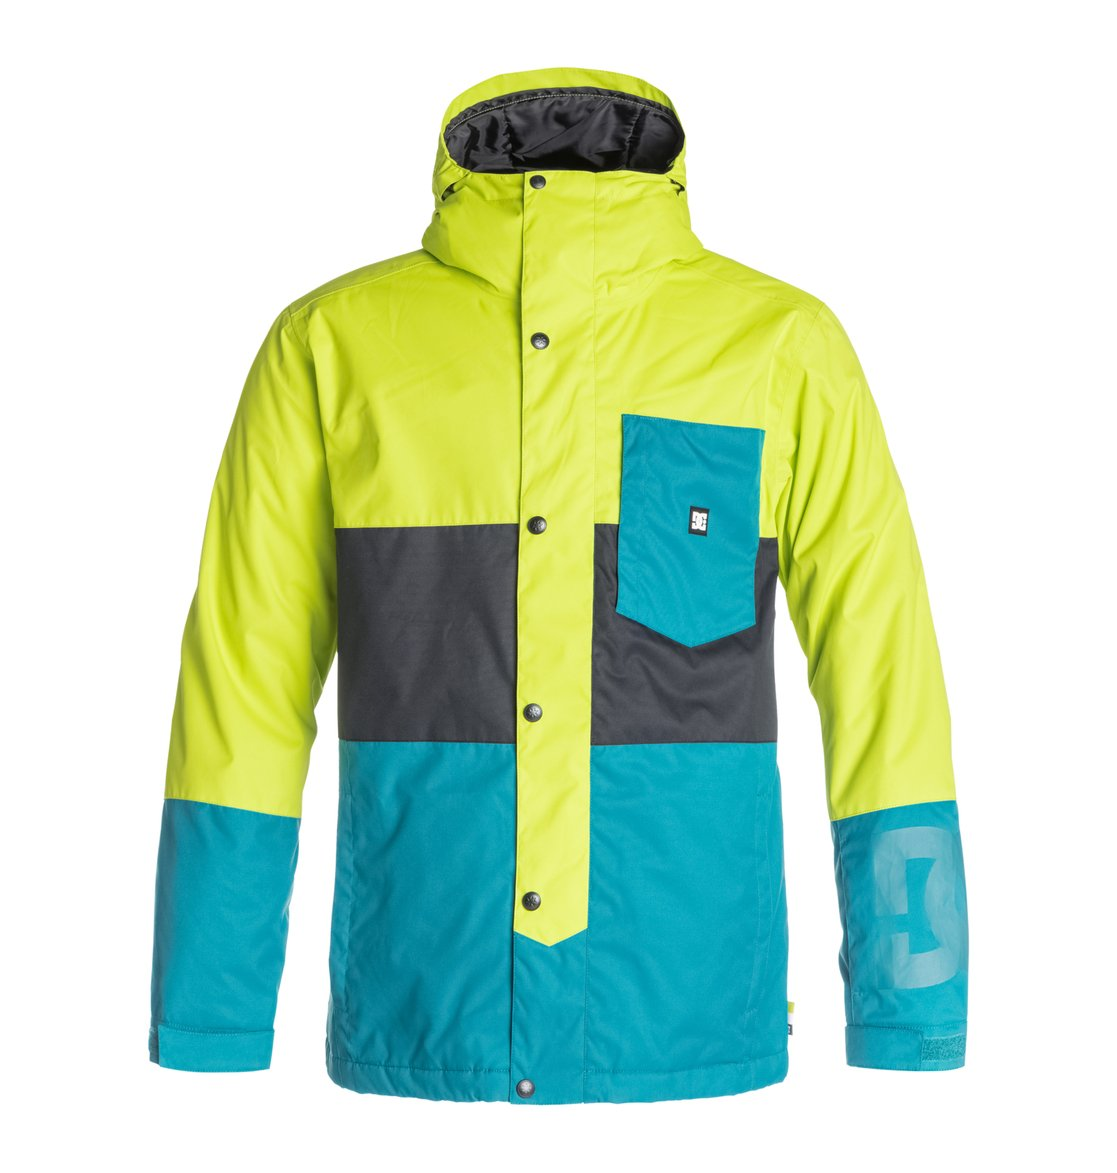 a54bebb44ec6 Men s Defy Snow Jacket EDYTJ03006